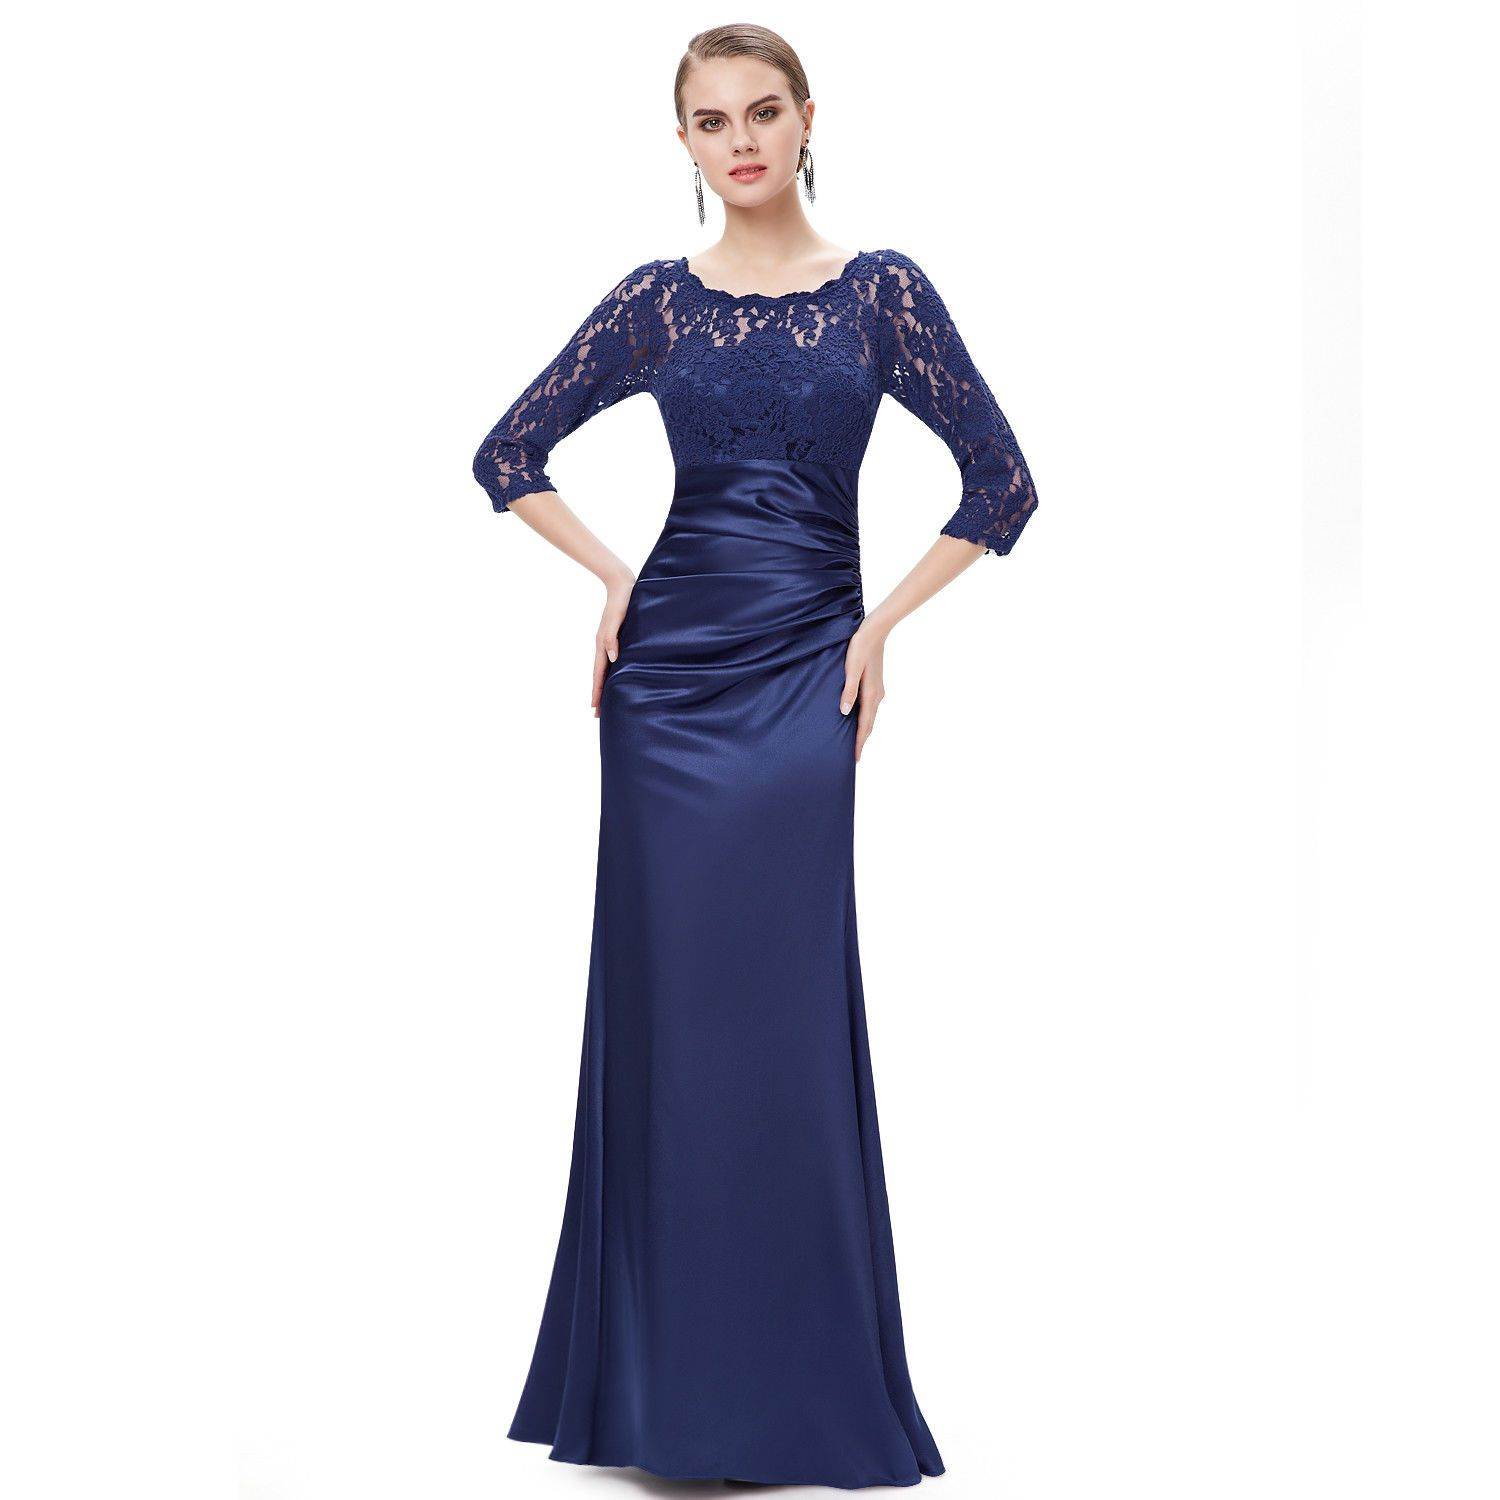 Awesome amazing women elegant evening formal lace party maxi prom